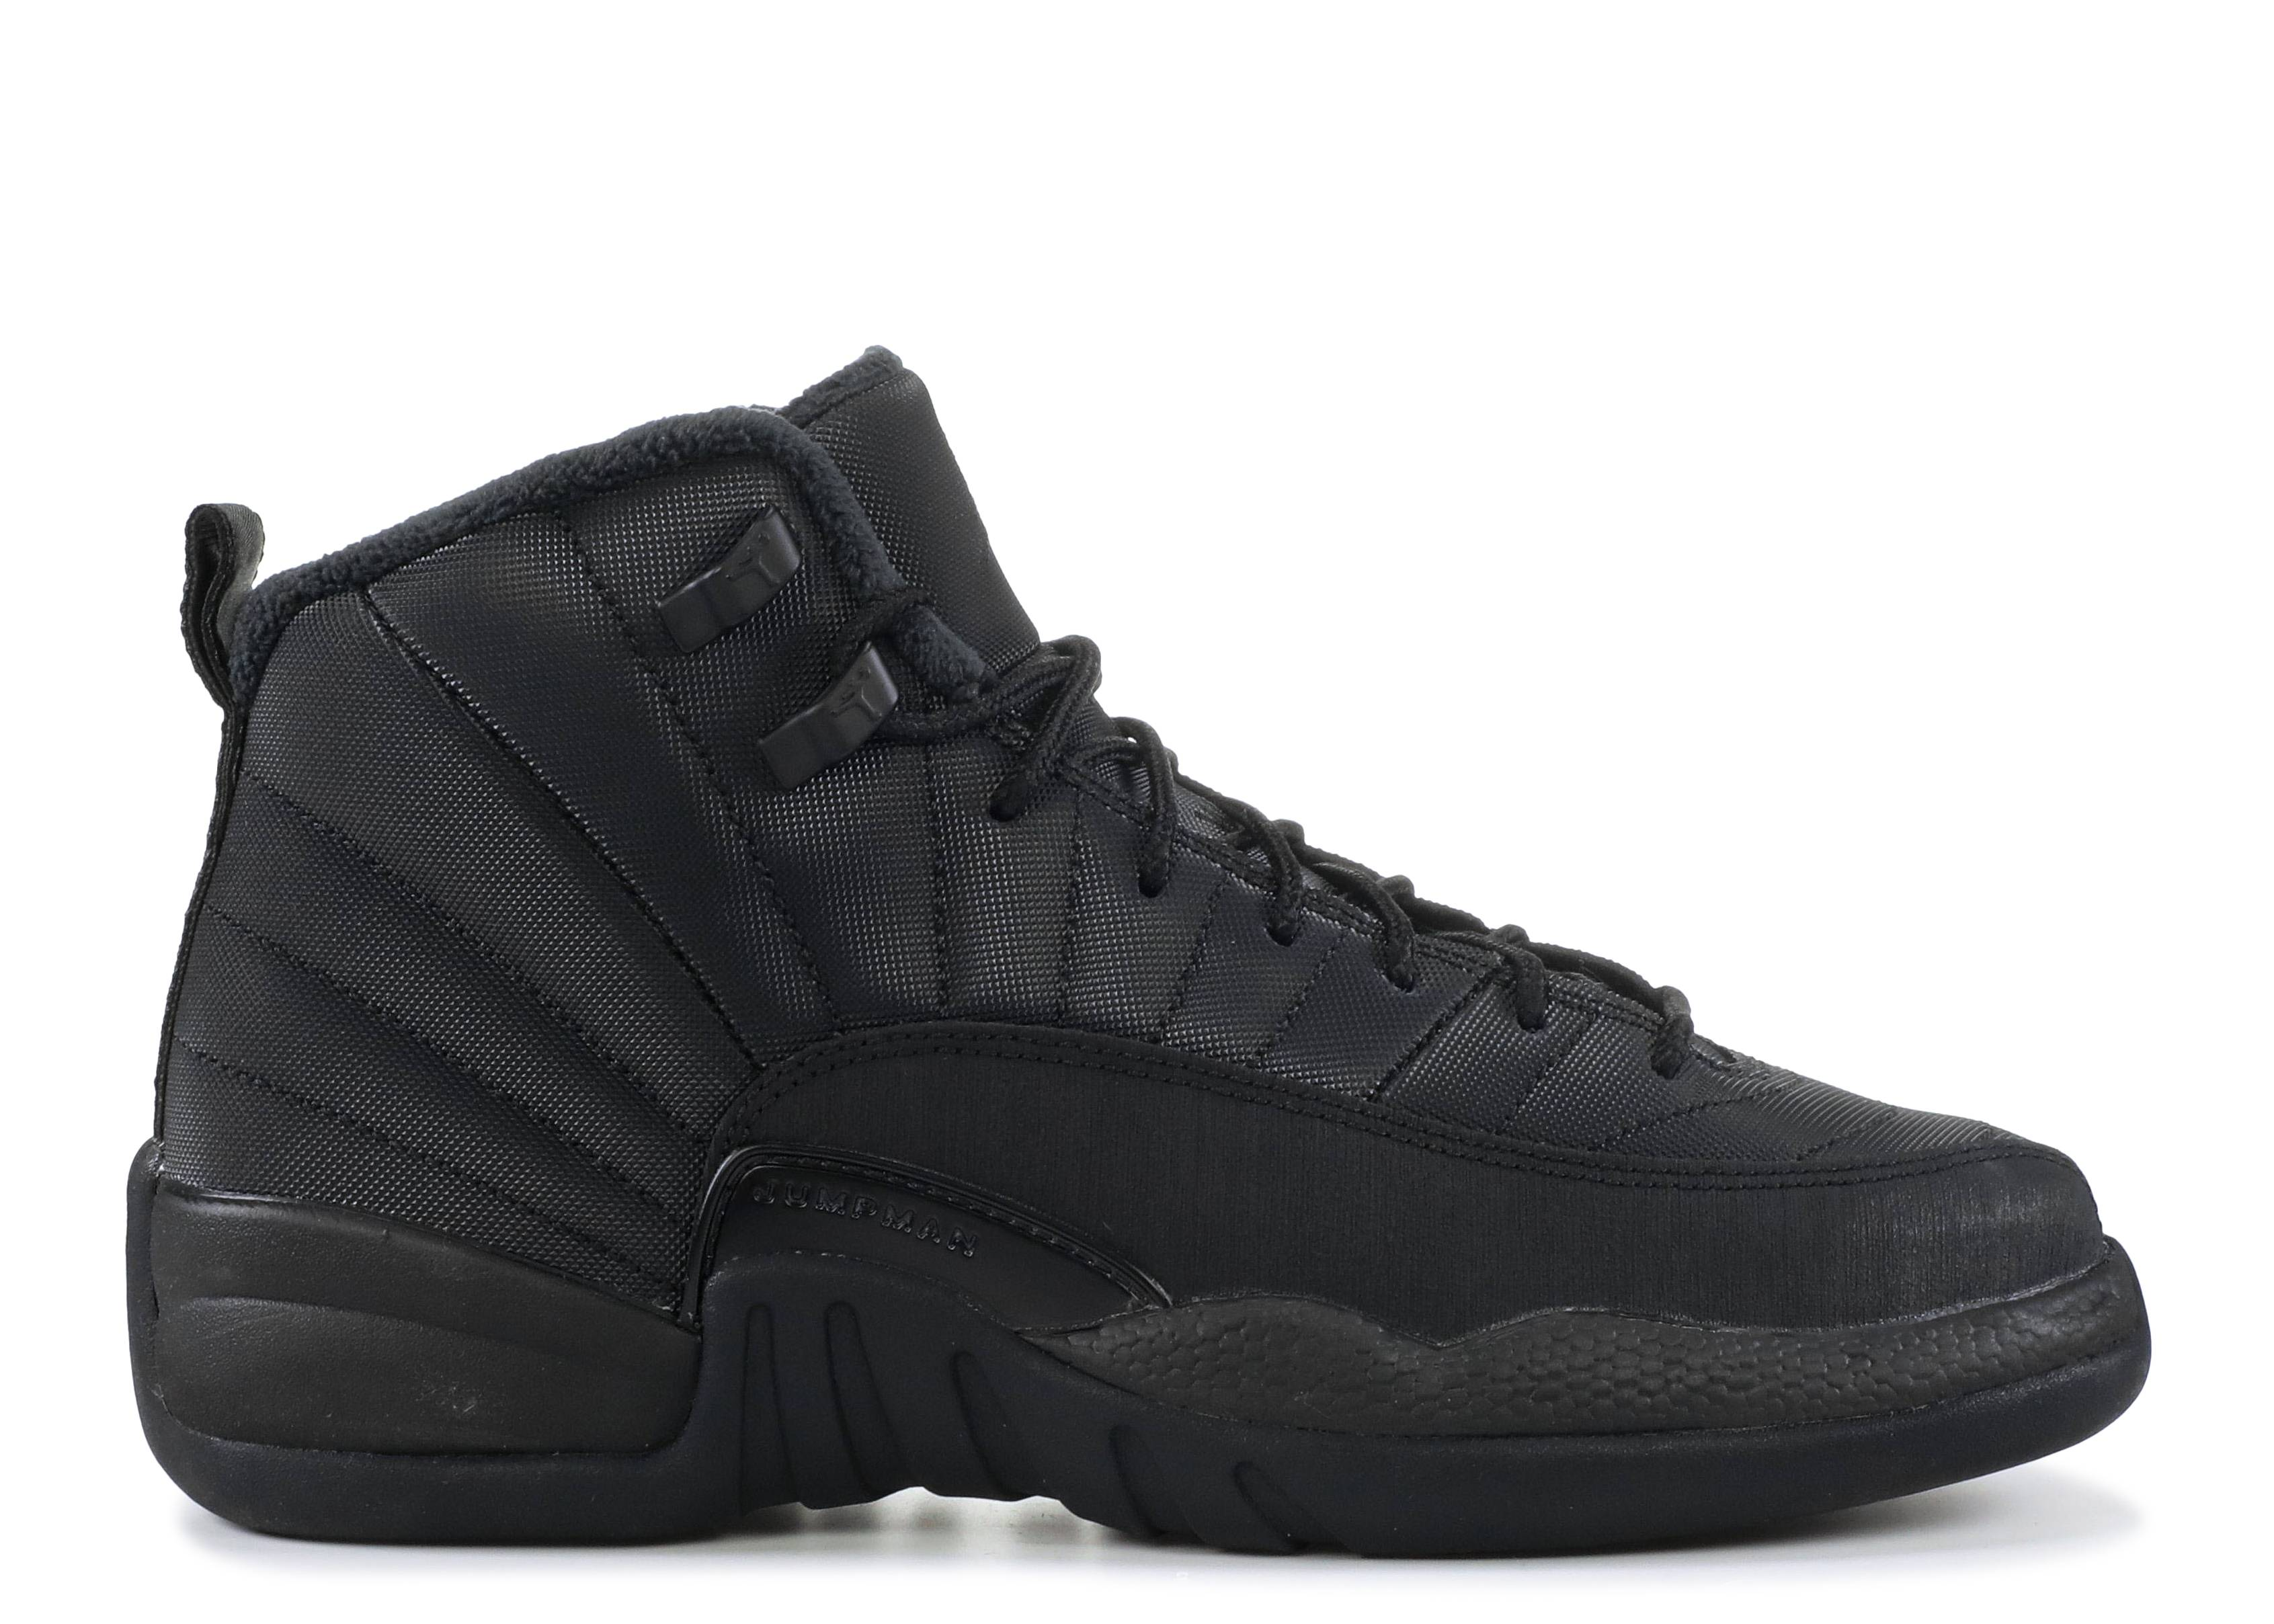 6fa74819af40 Air Jordan 12 Retro Wntr (gs) - Air Jordan - bq6852 001 - black ...